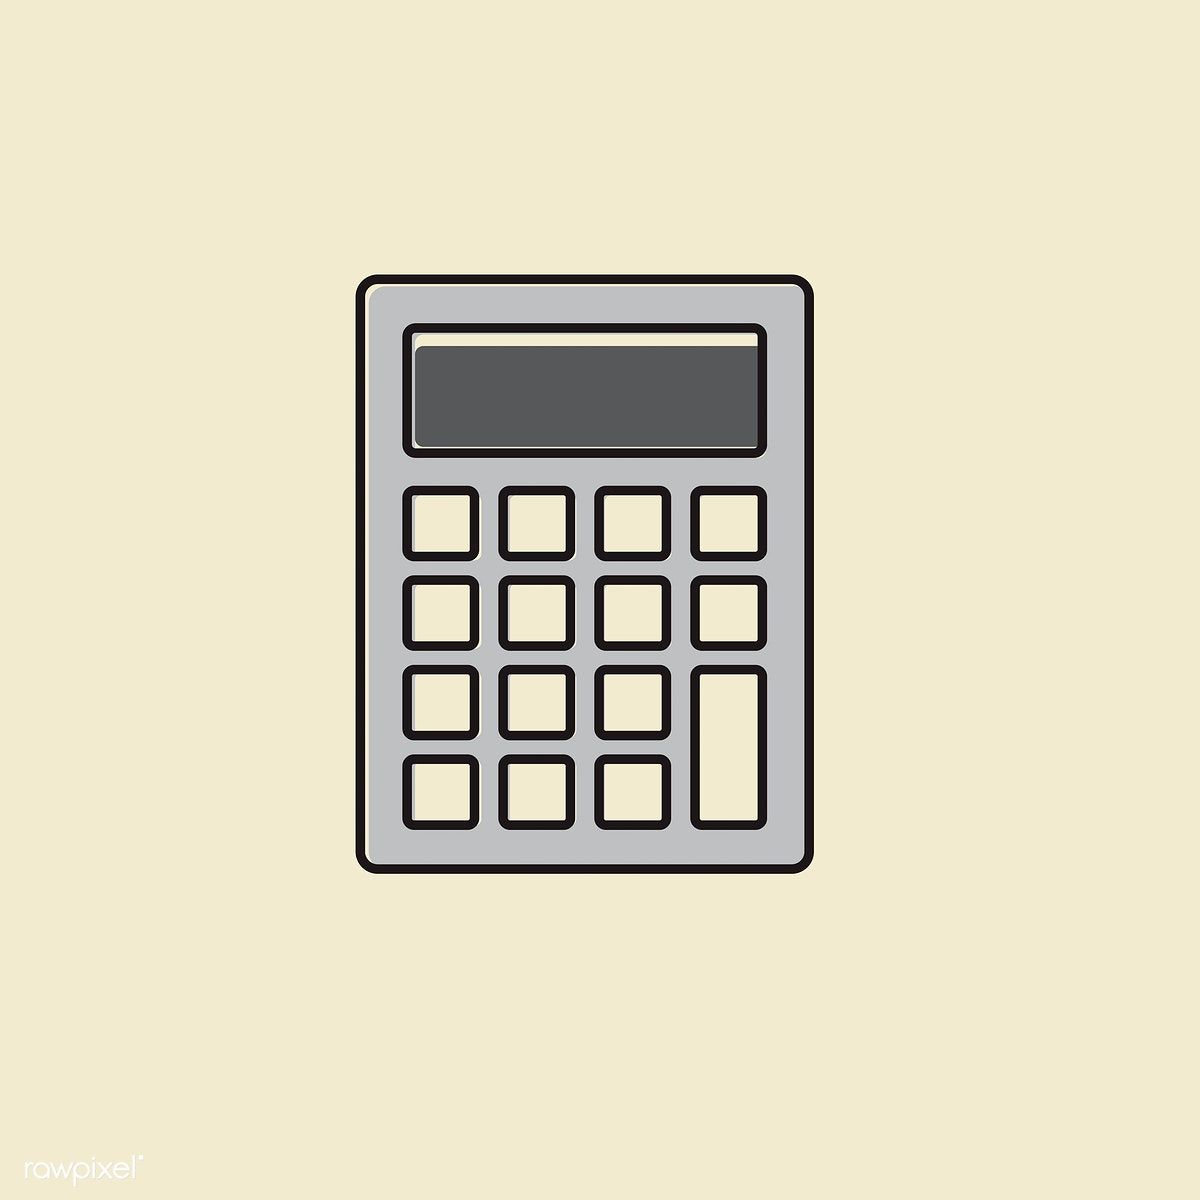 Vector of calculator icon | free image by rawpixel.com ...